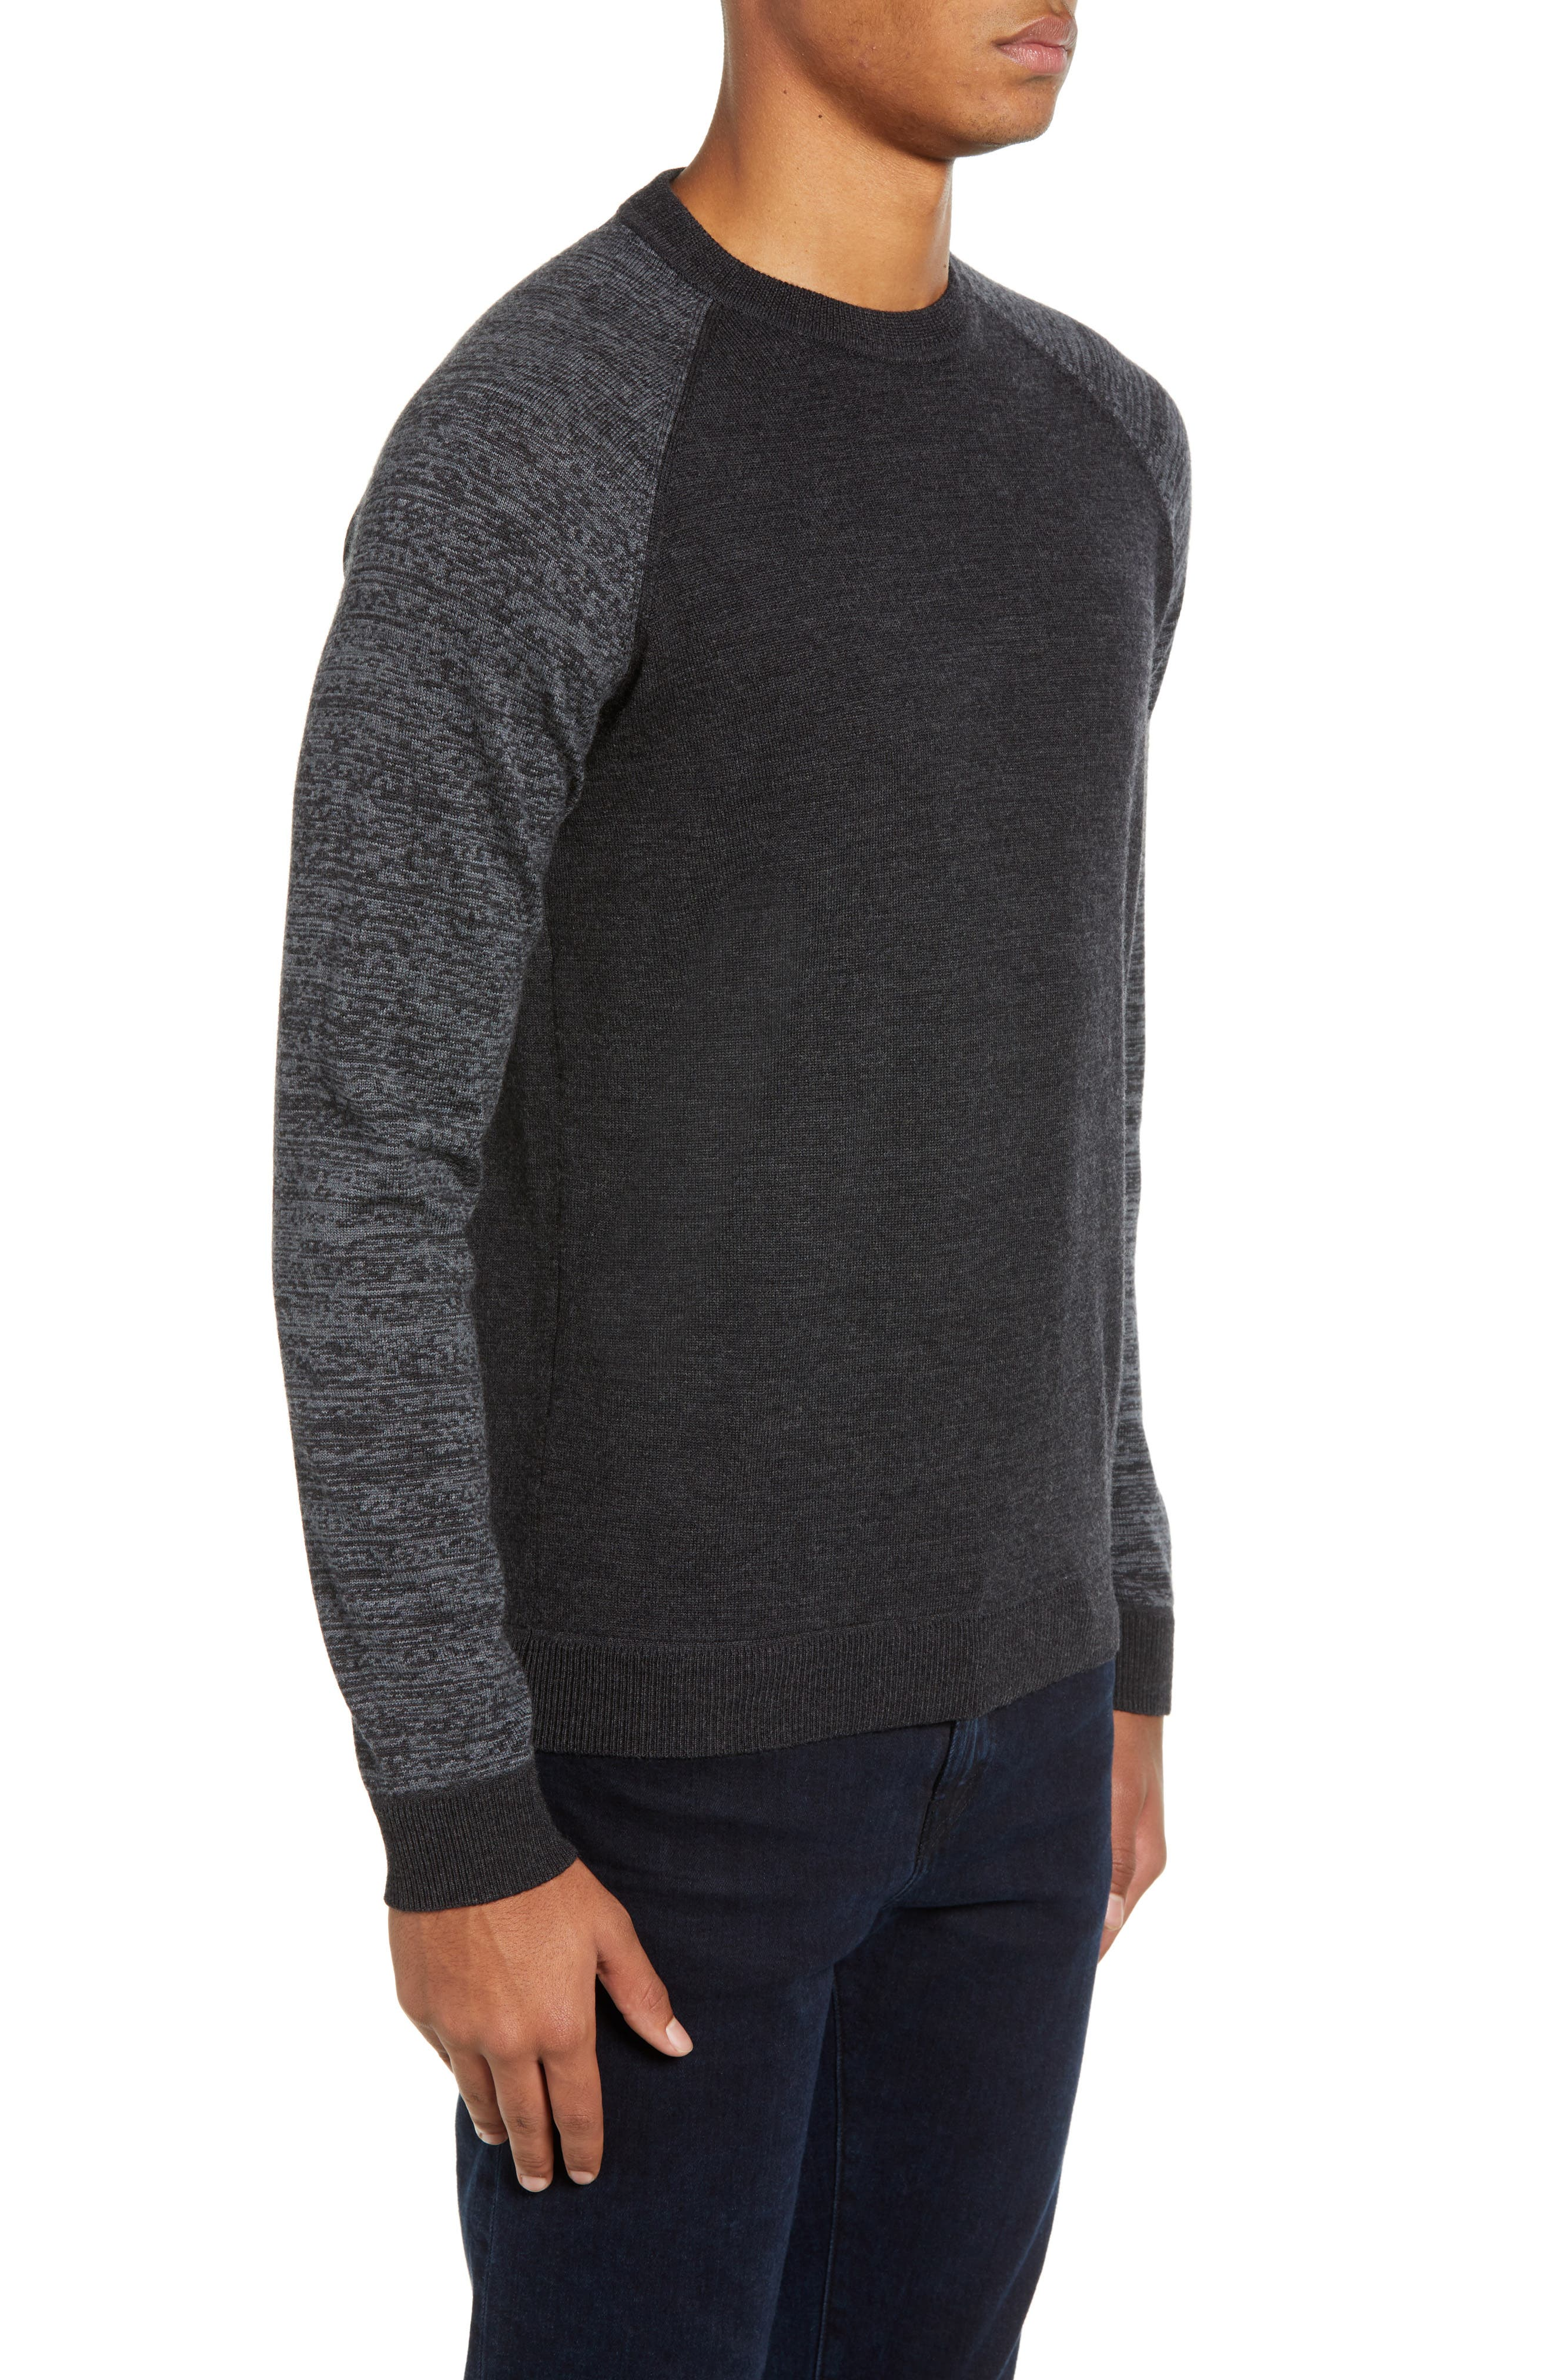 Cornfed Slim Fit Sweater,                             Alternate thumbnail 3, color,                             CHARCOAL